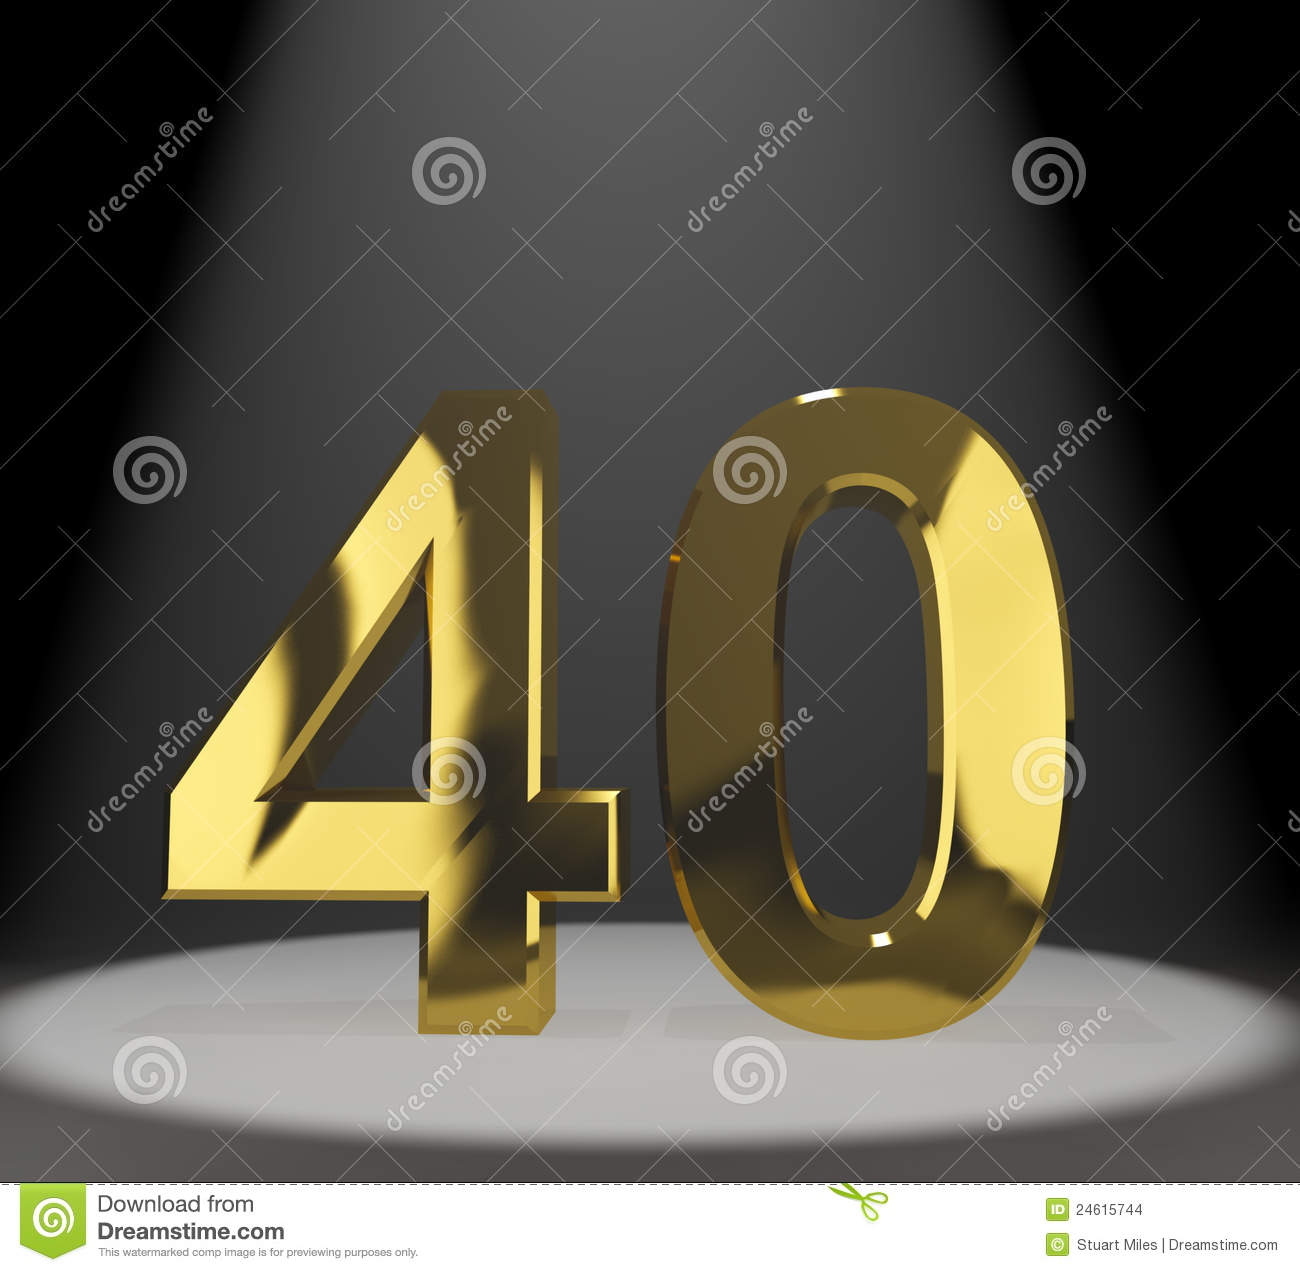 Golden 40 Gold 40th Or Forty 3d Number Stock Images - Image: 24615744